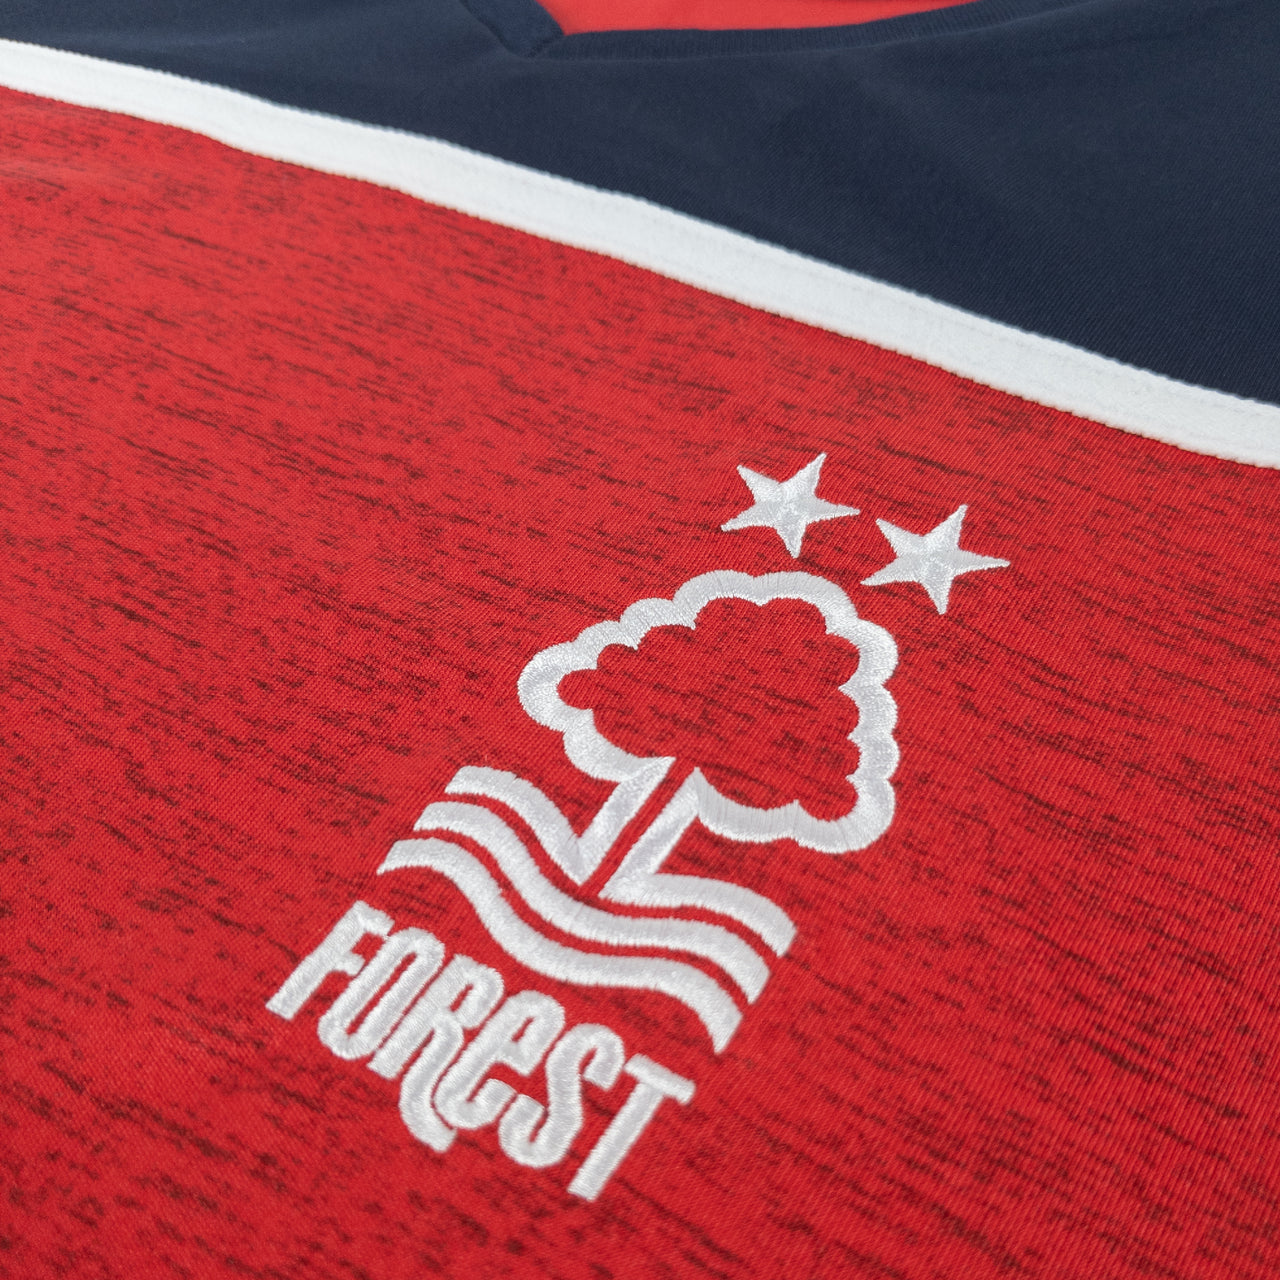 NFFC Junior Player Pre Season Jersey 2020/21